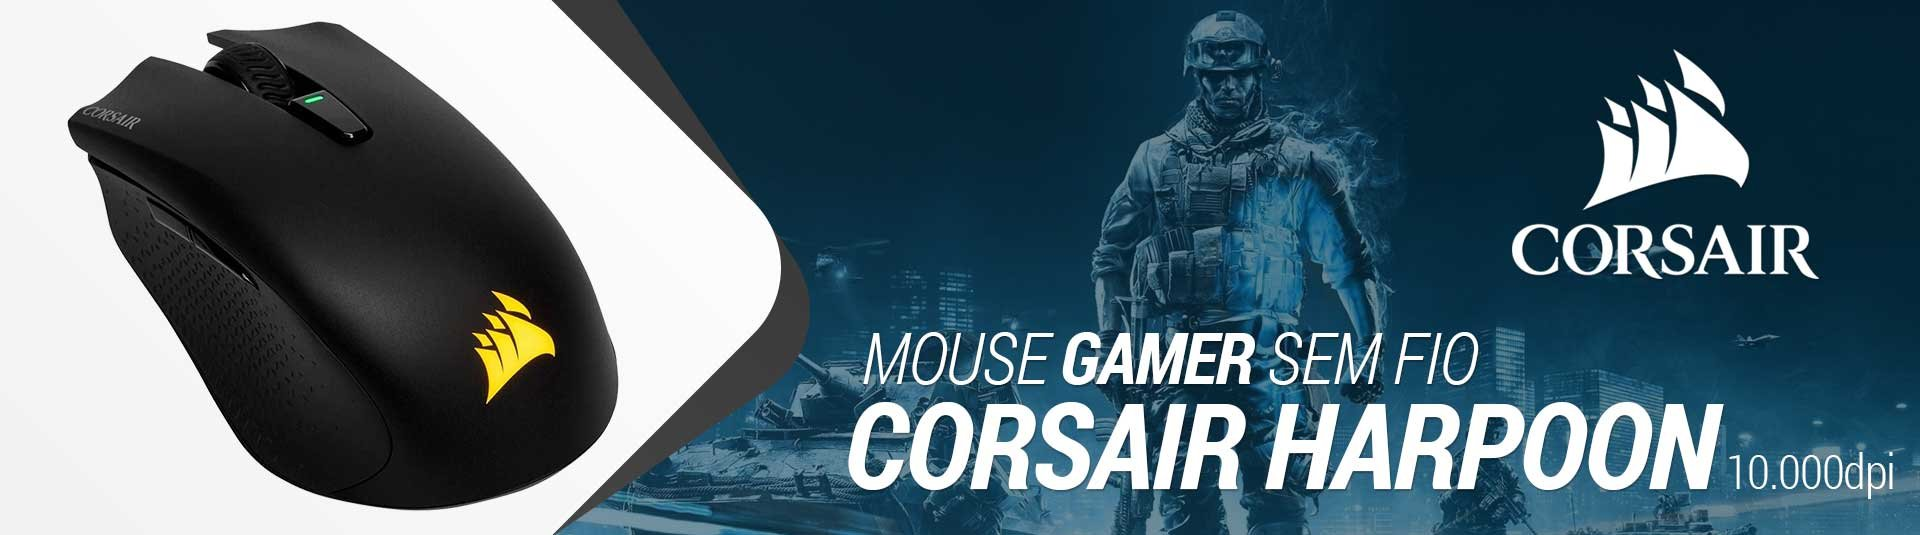 Mouse Gamer Wireless Corsair Harpoon